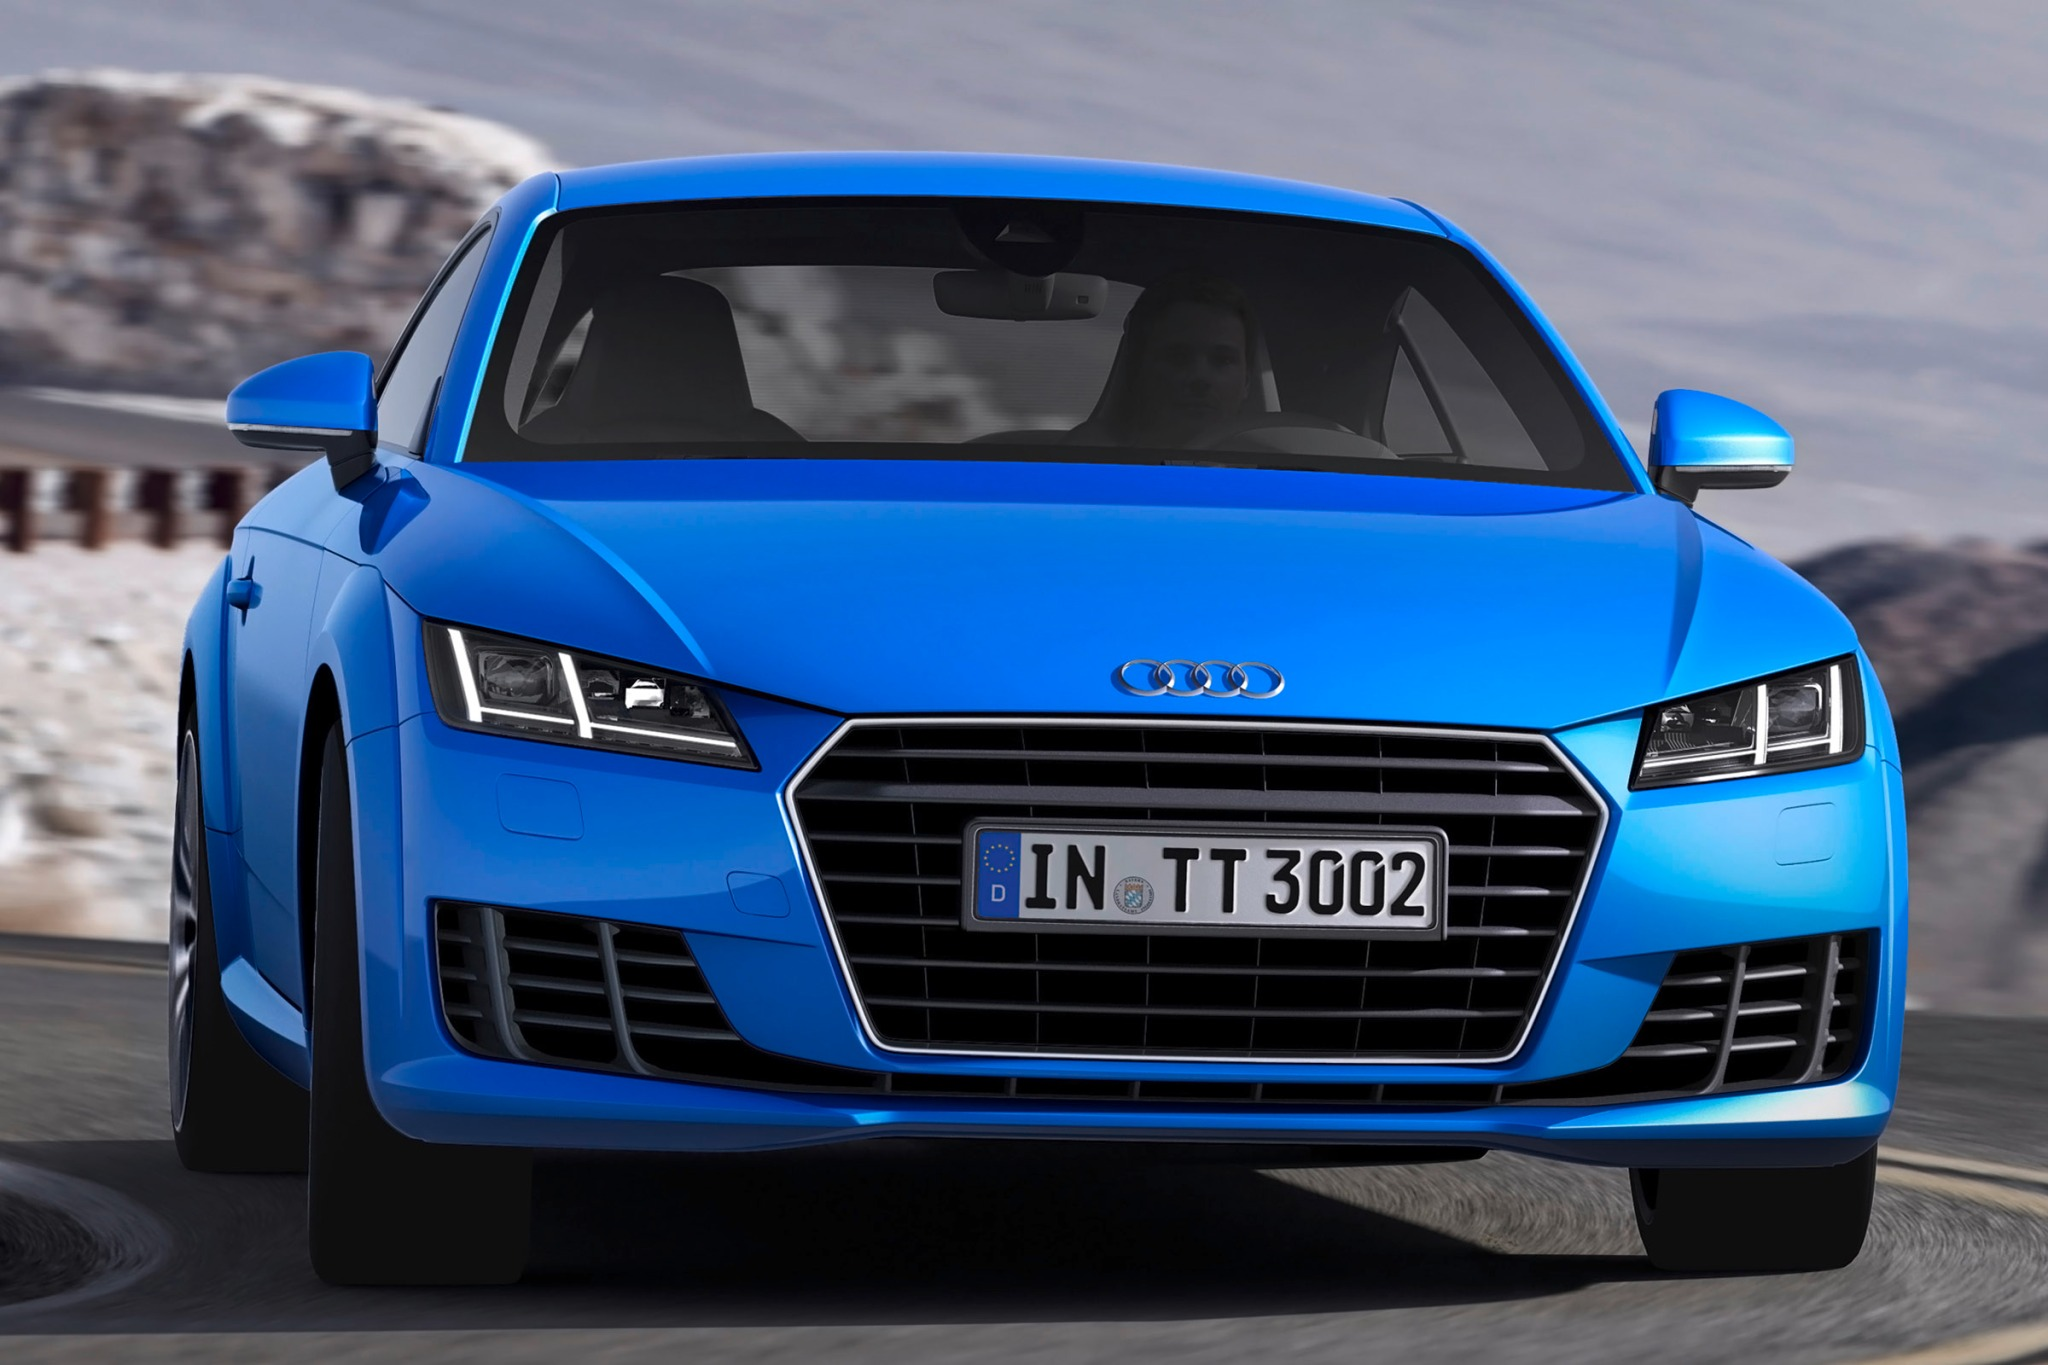 2016 Audi TT Coupe Steeri interior #3